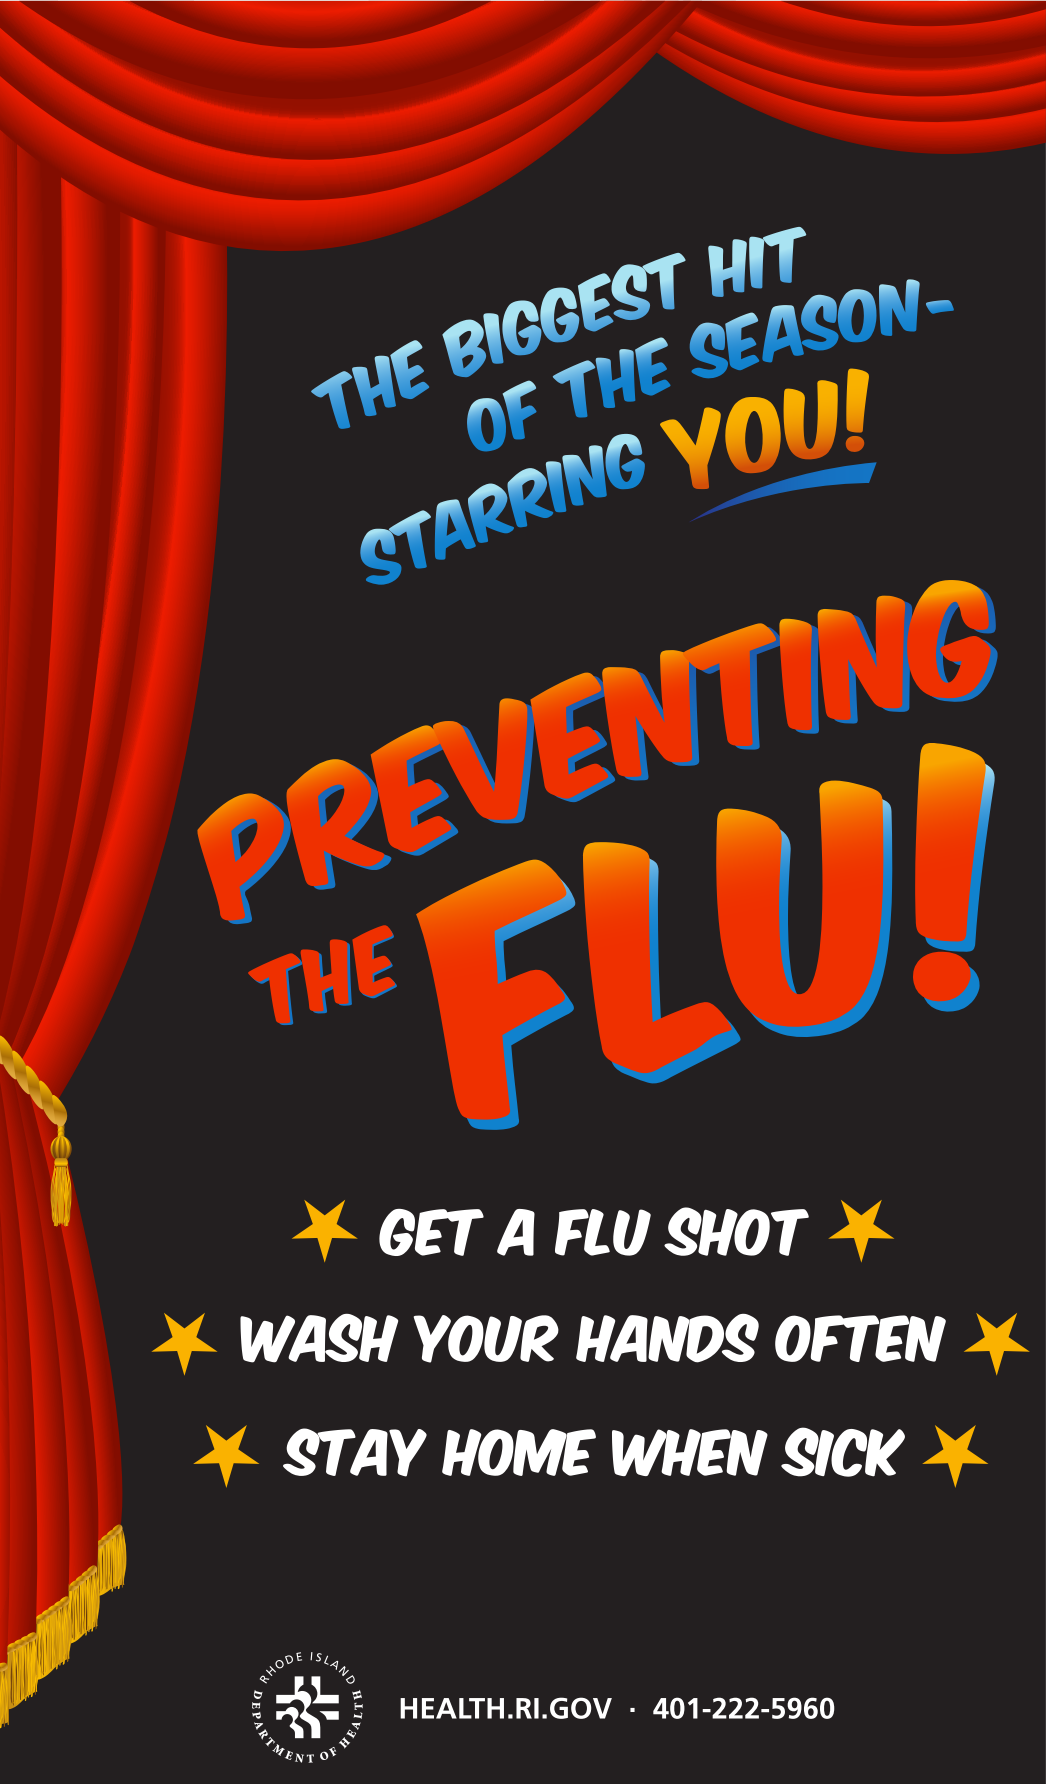 Flu Vaccination - Preventing the Flu, Starring You!